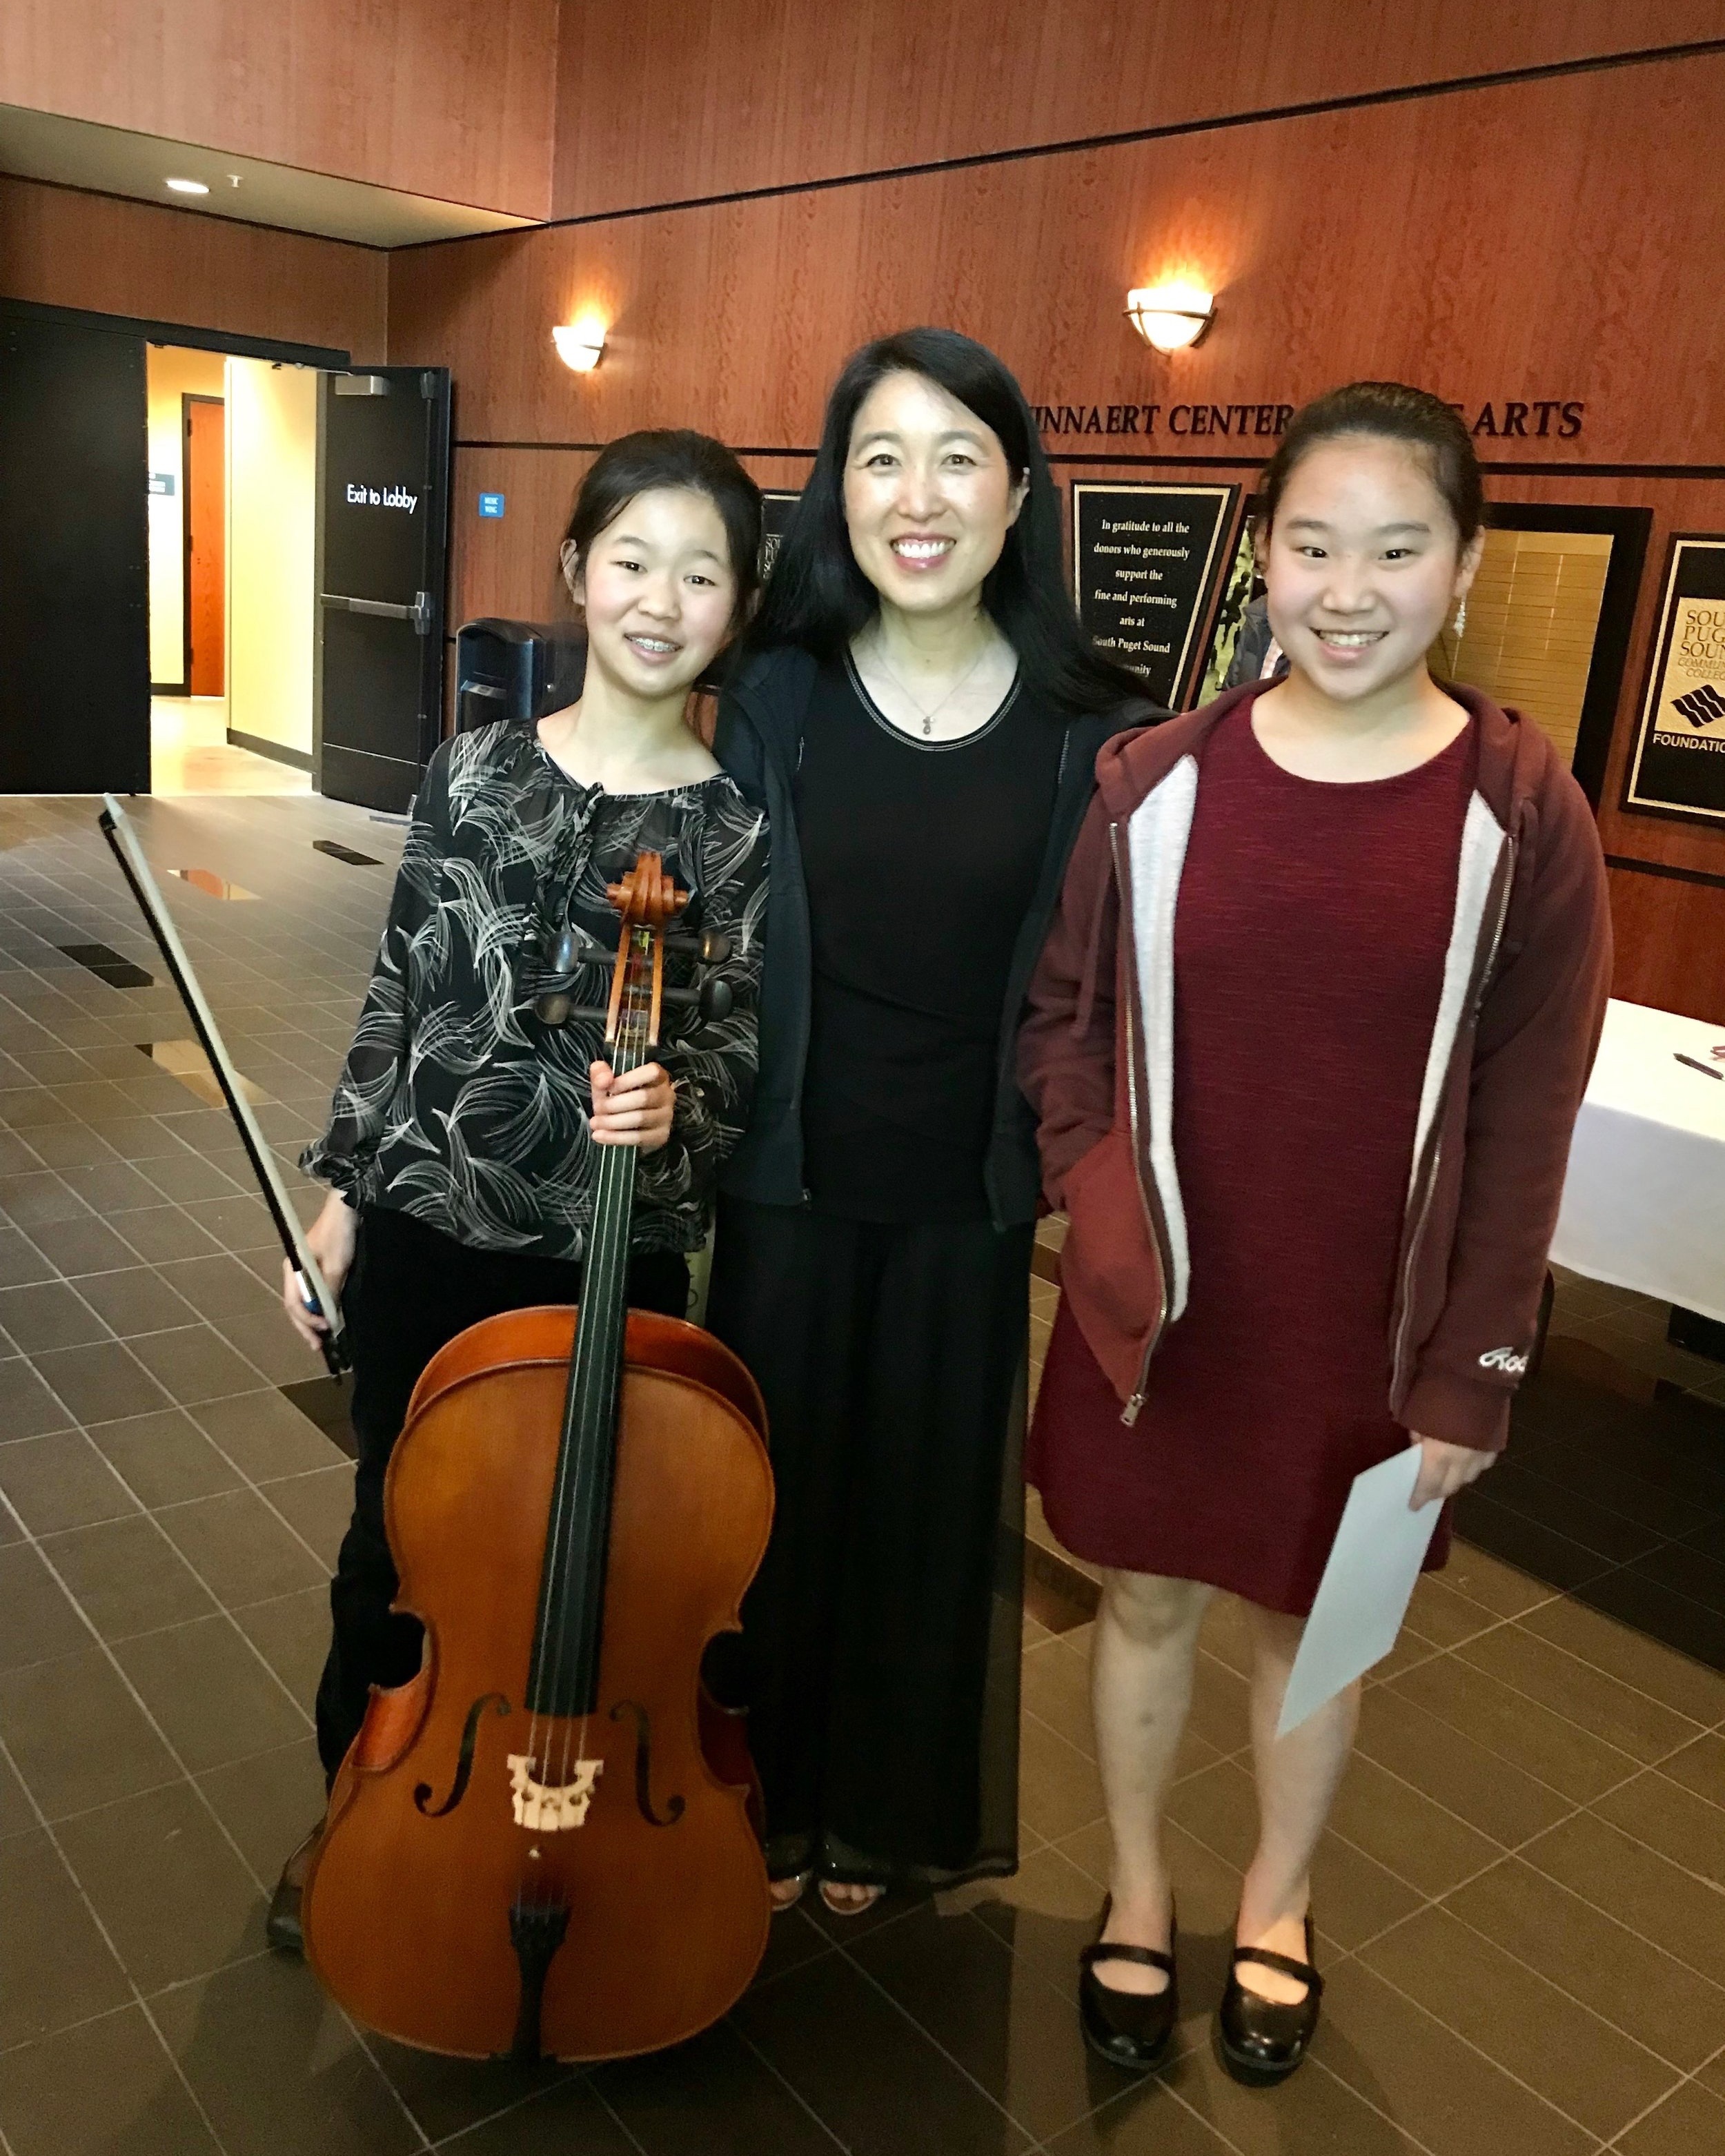 """So proud of these talented young musicians!  Sky played an exquisite """"Meditation from Thais"""" and Chloe won over the judges with her """"Fantasie Impromptu""""."""